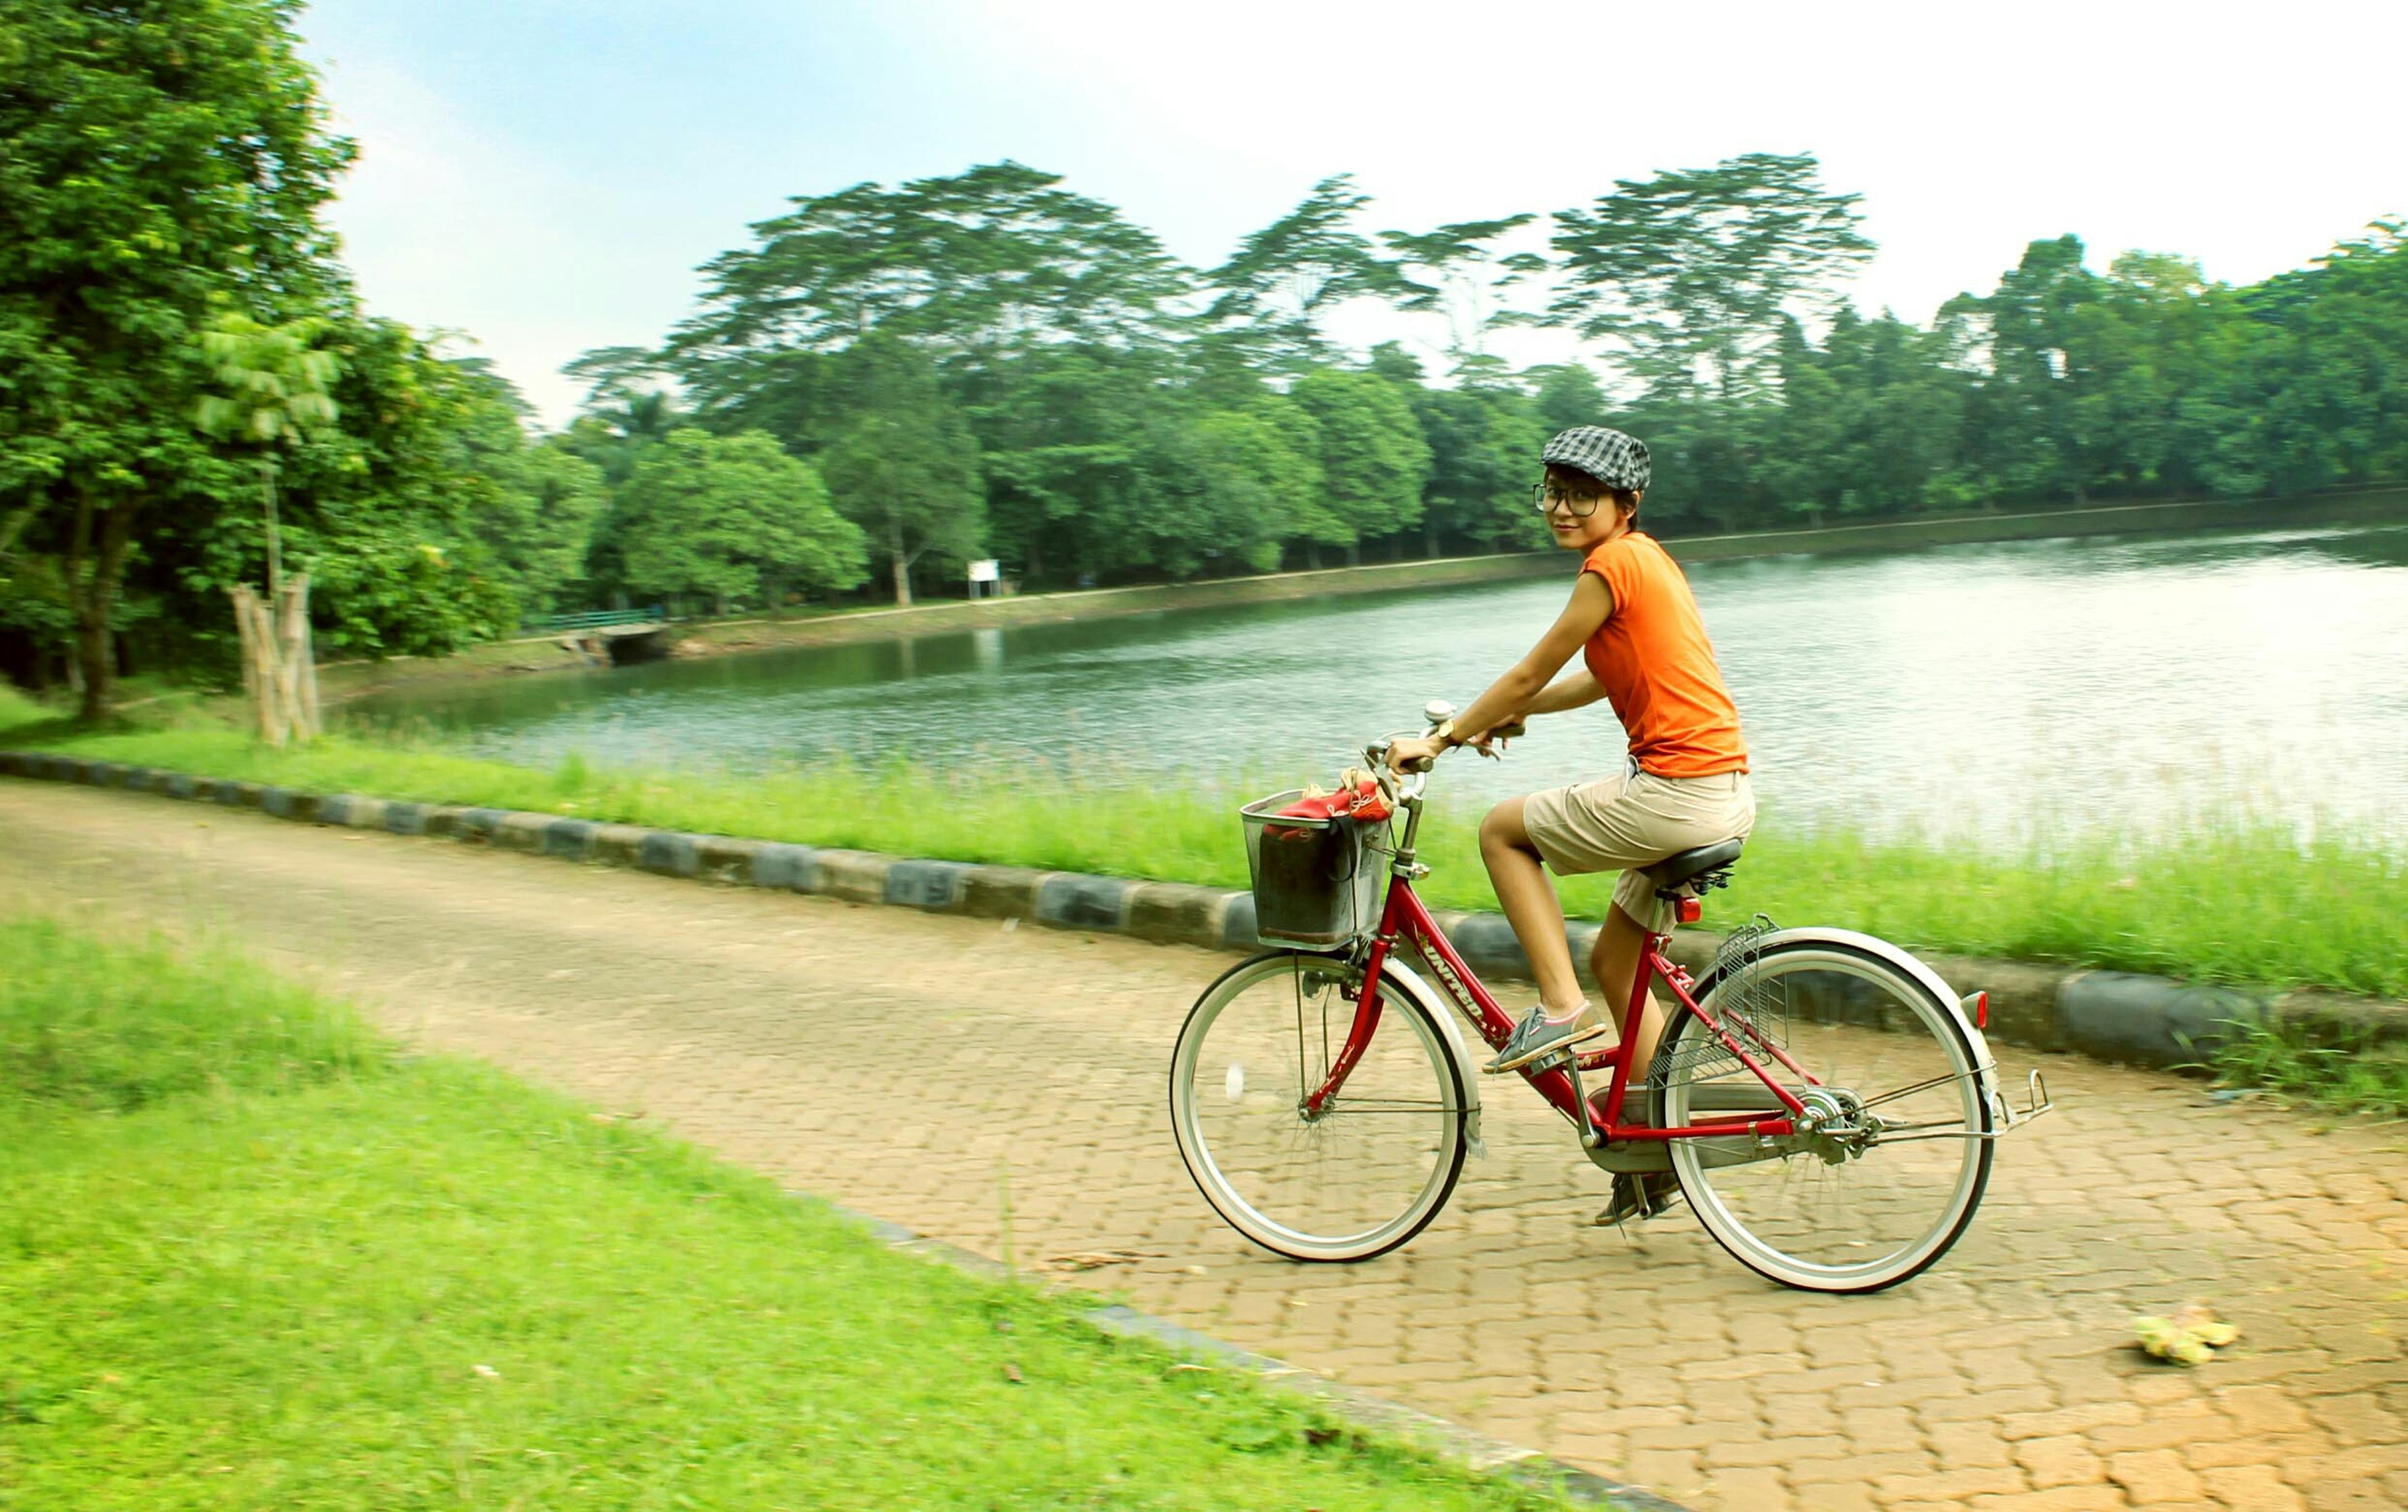 bicycle, transportation, mode of transport, riding, tree, lifestyles, leisure activity, full length, land vehicle, water, grass, travel, cycling, men, casual clothing, side view, river, sky